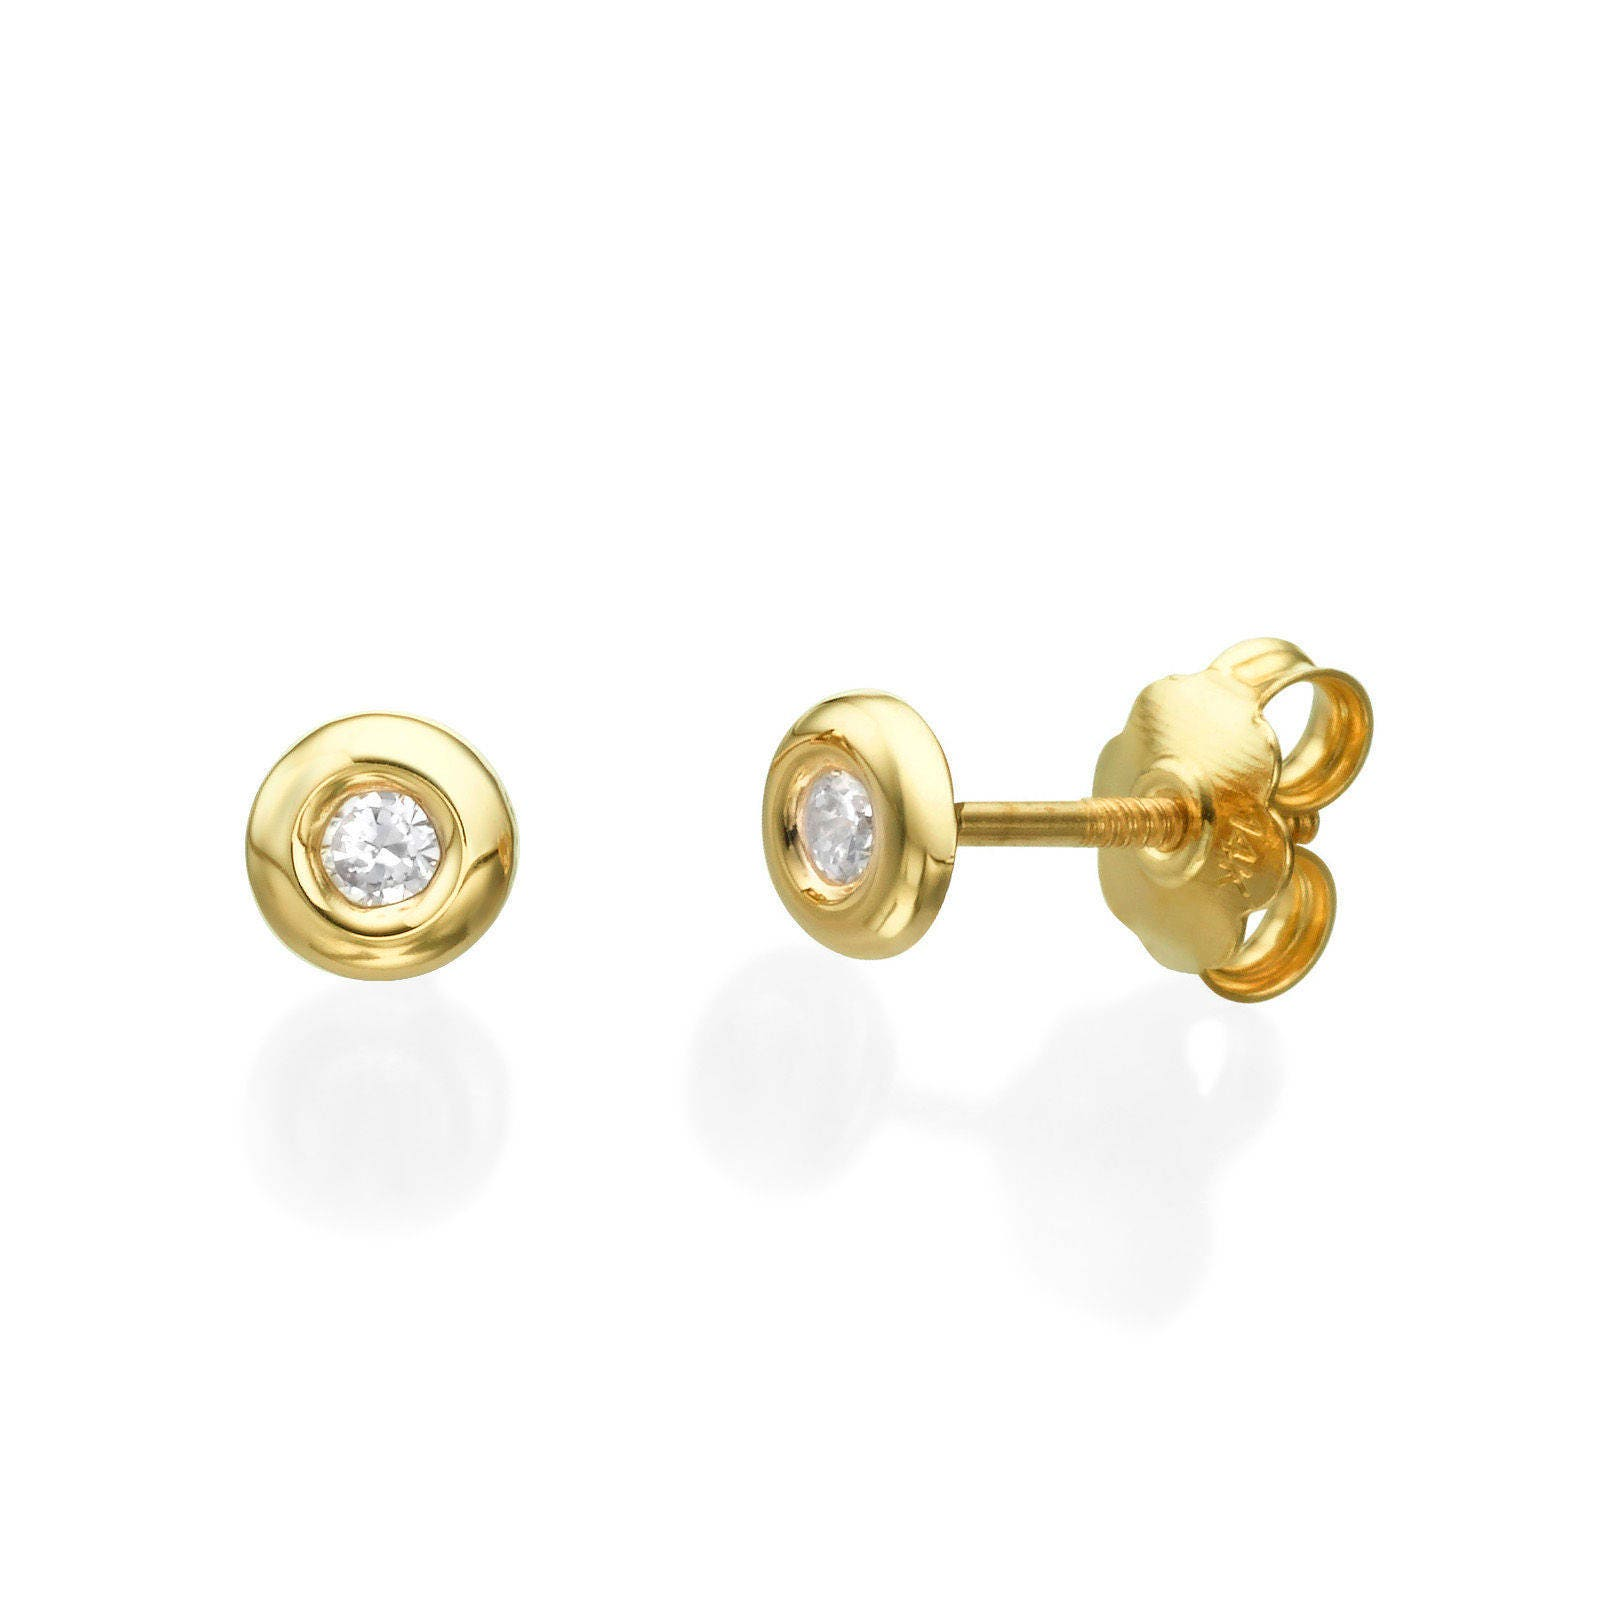 jewelry tear earrings llc wire co collections drop delicate earring chace dsc products gold